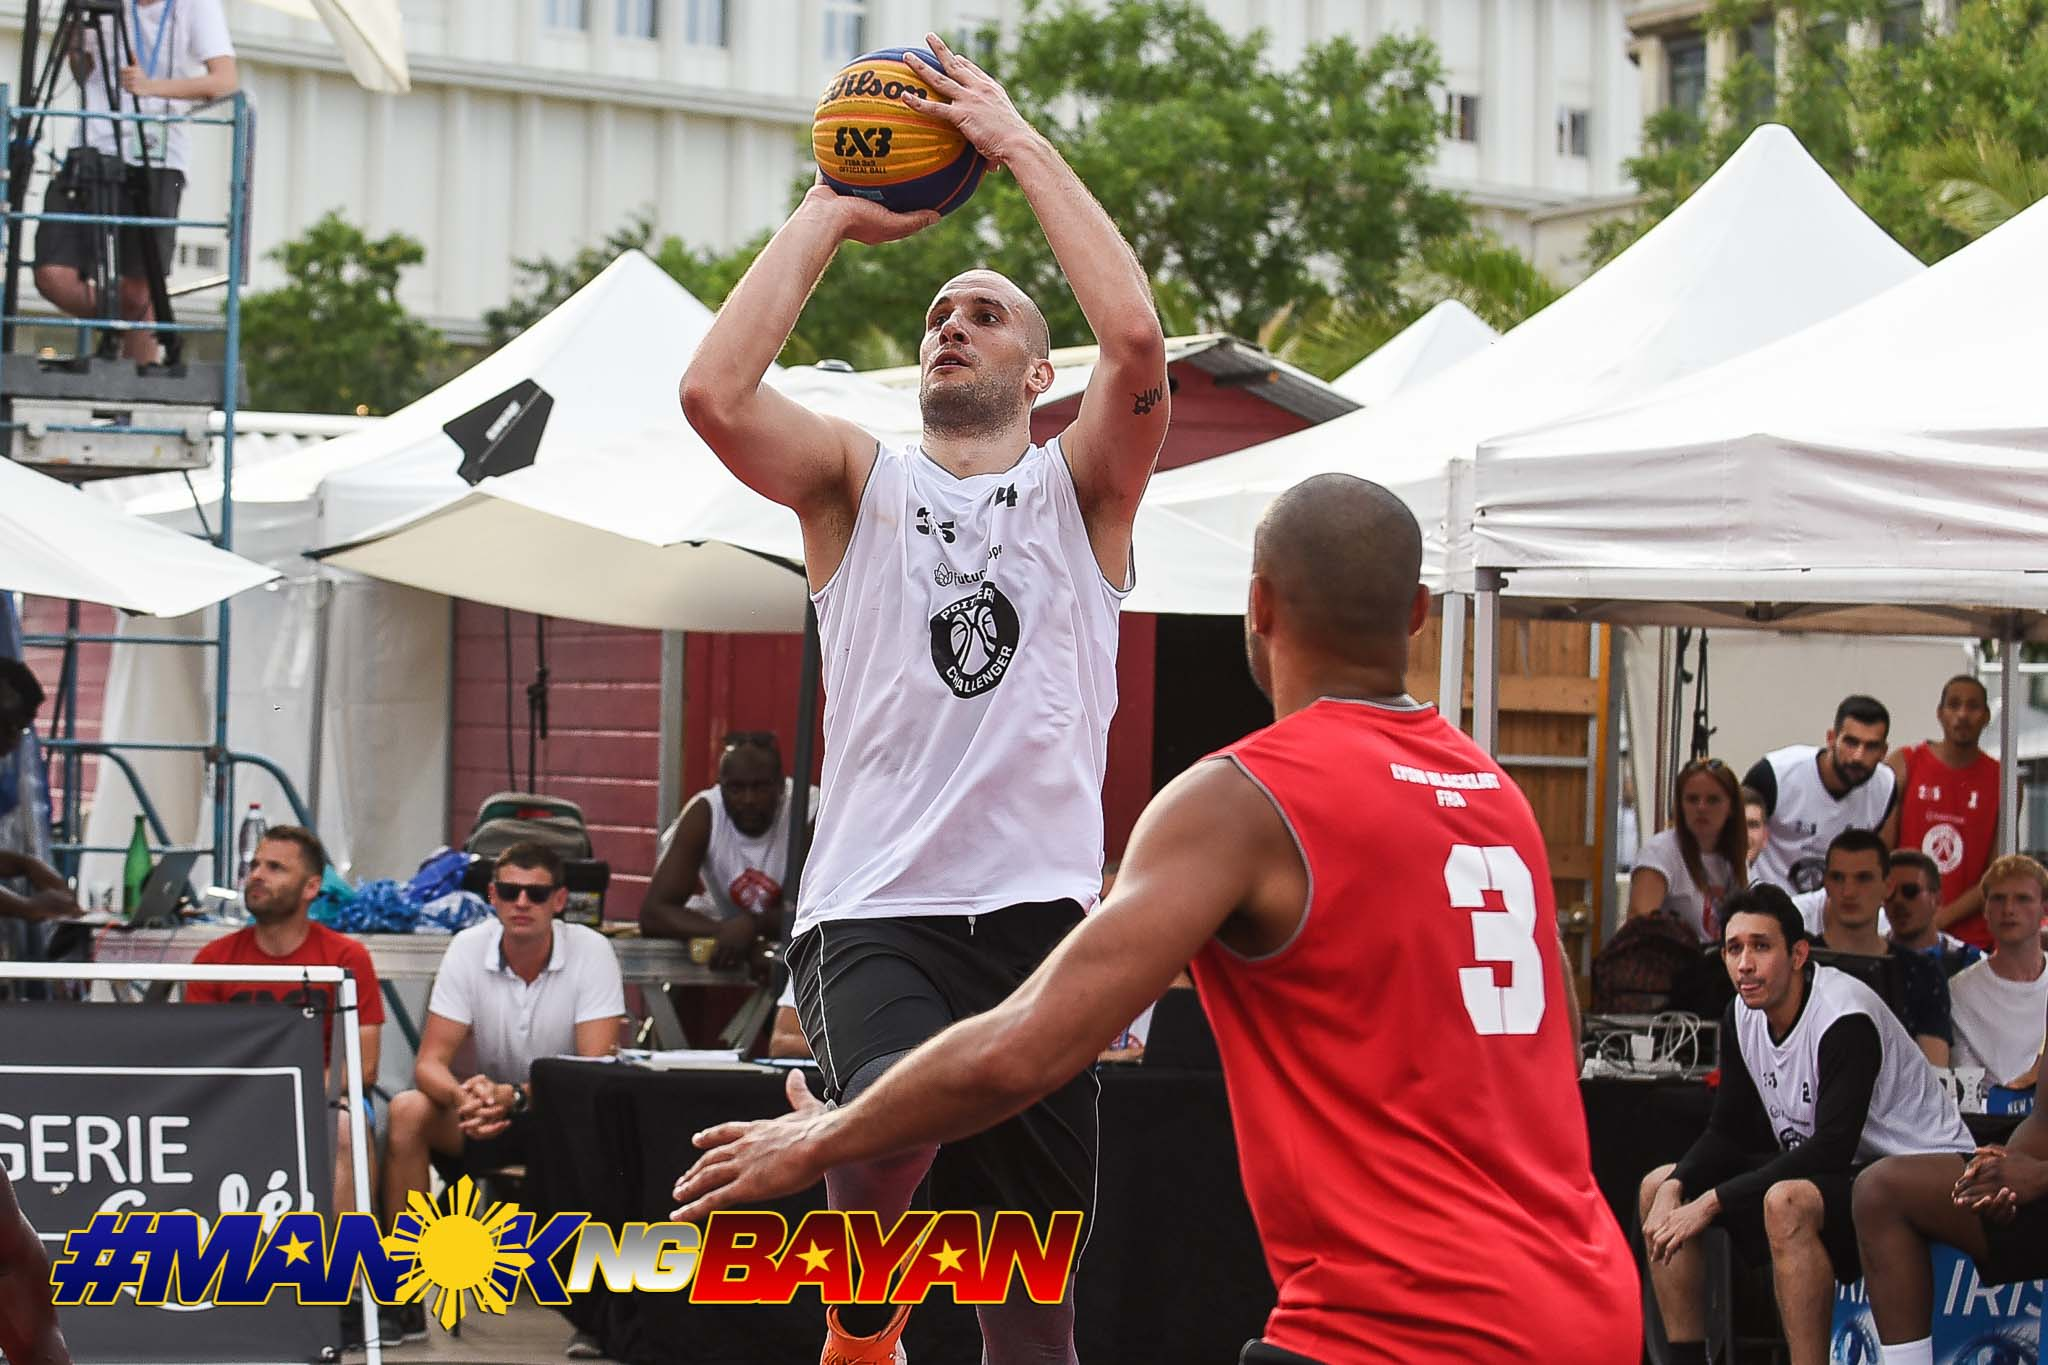 Tiebreaker Times Nikola Pavlovic takes over in OT against Lyon, carries Pasig to Poitiers playoffs 3x3 Basketball Chooks-to-Go Pilipinas 3x3 News  Taylor Statham Nikola Pavlovic Lyon Blacklist Joshua Munzon Gold's Gym-Pasig Kings Dylan Ababou 2019 Poitiers Challenger